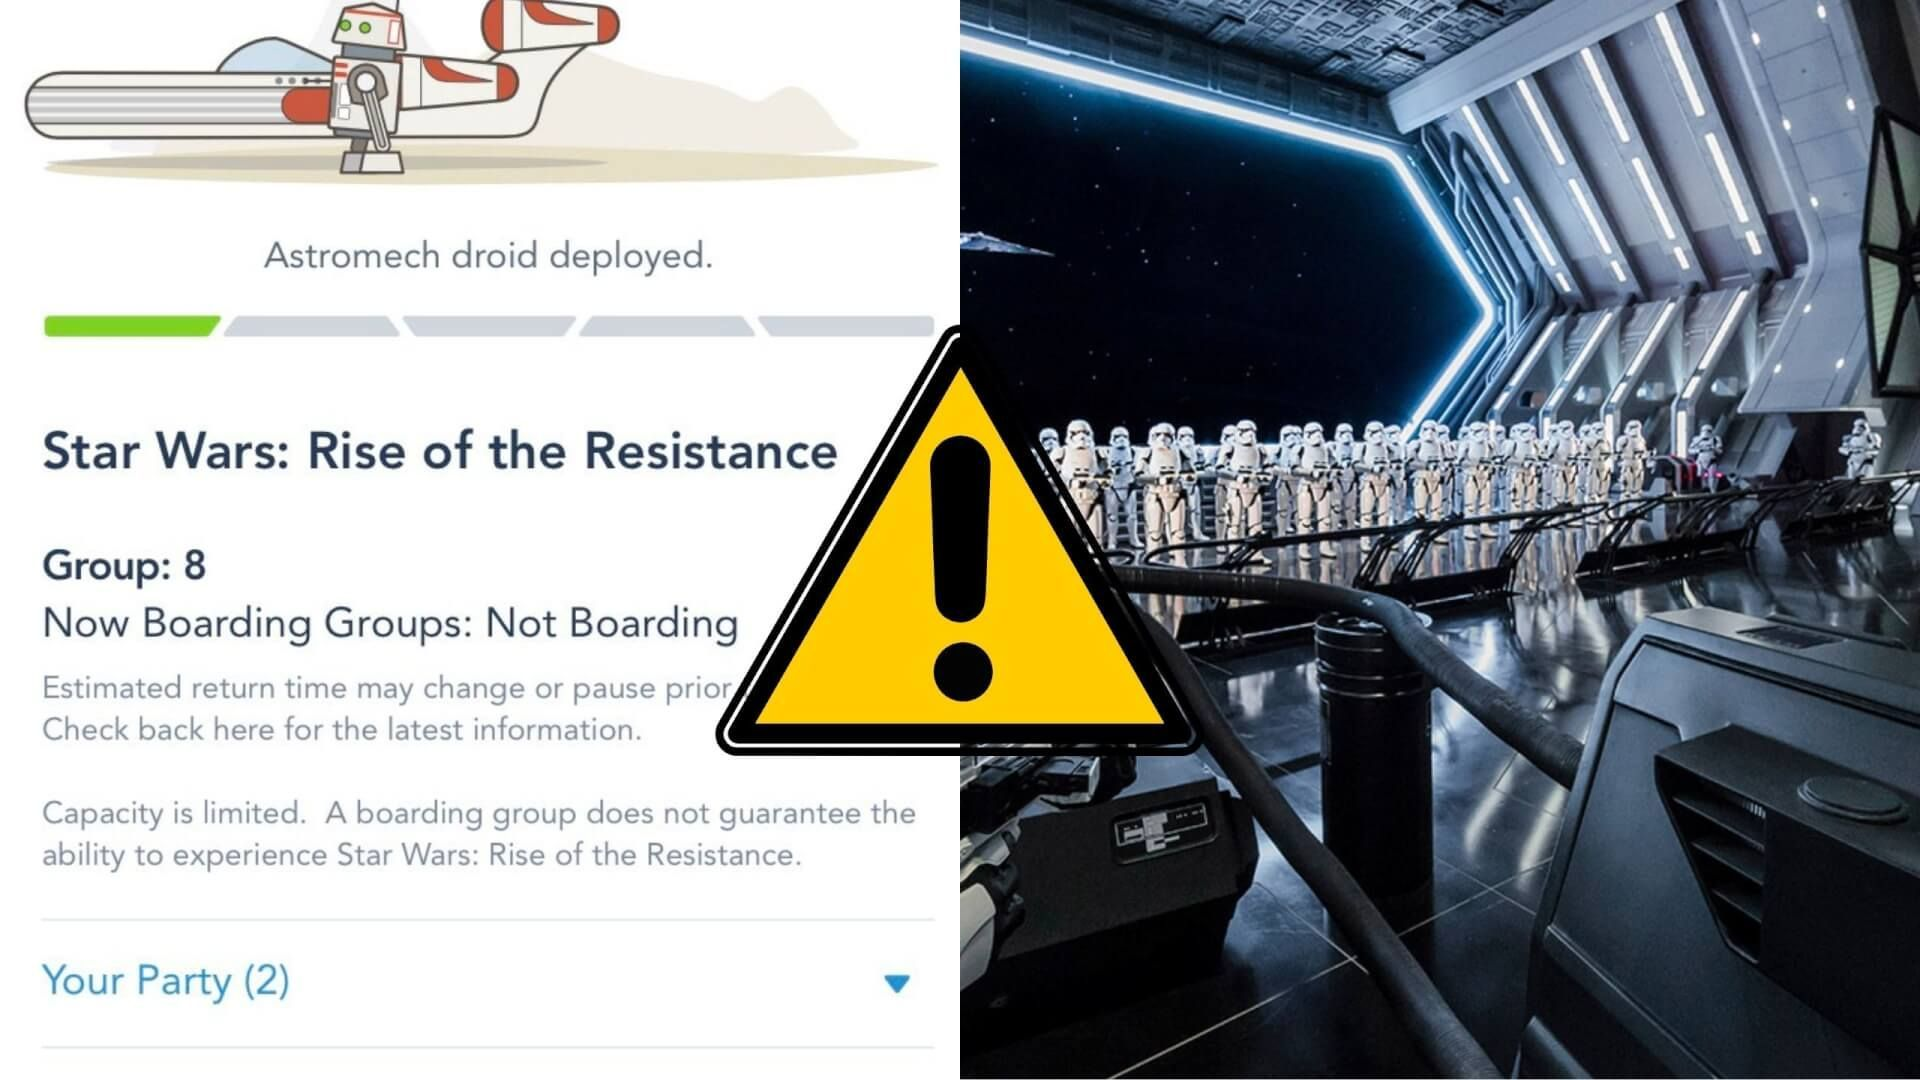 03113442b7dff0aaca9ee5b21fa6a81b - How To Get In Queue For Rise Of The Resistance